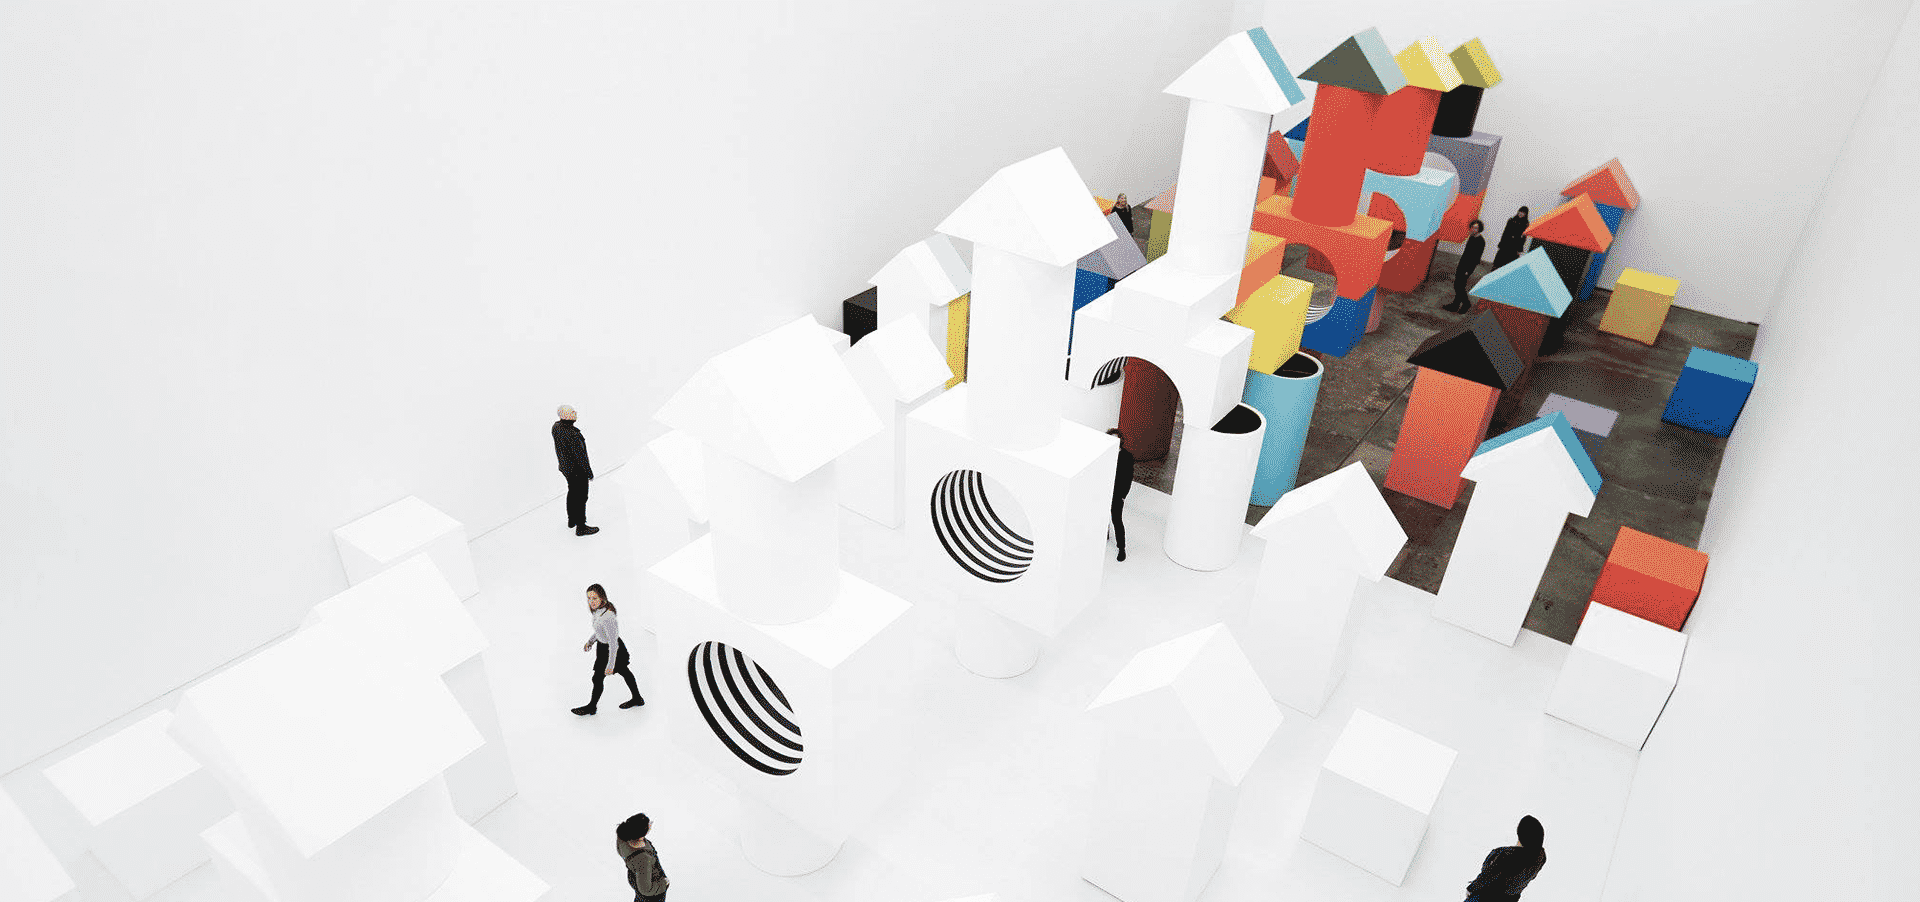 New Geometric Art Exhibition By Daniel Buren